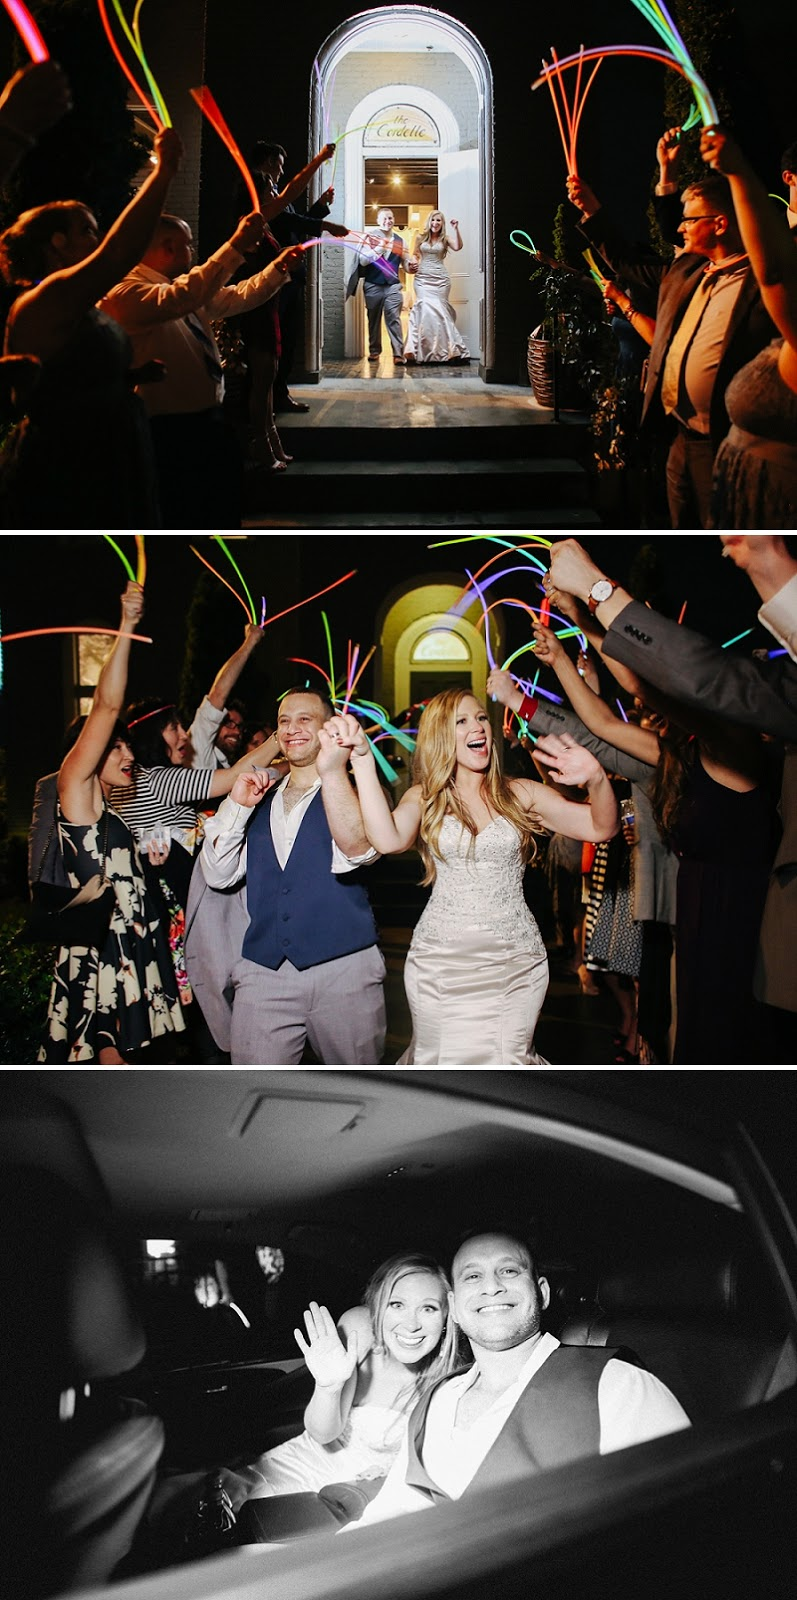 cordell-wedding-photographer-nashville-40.jpeg